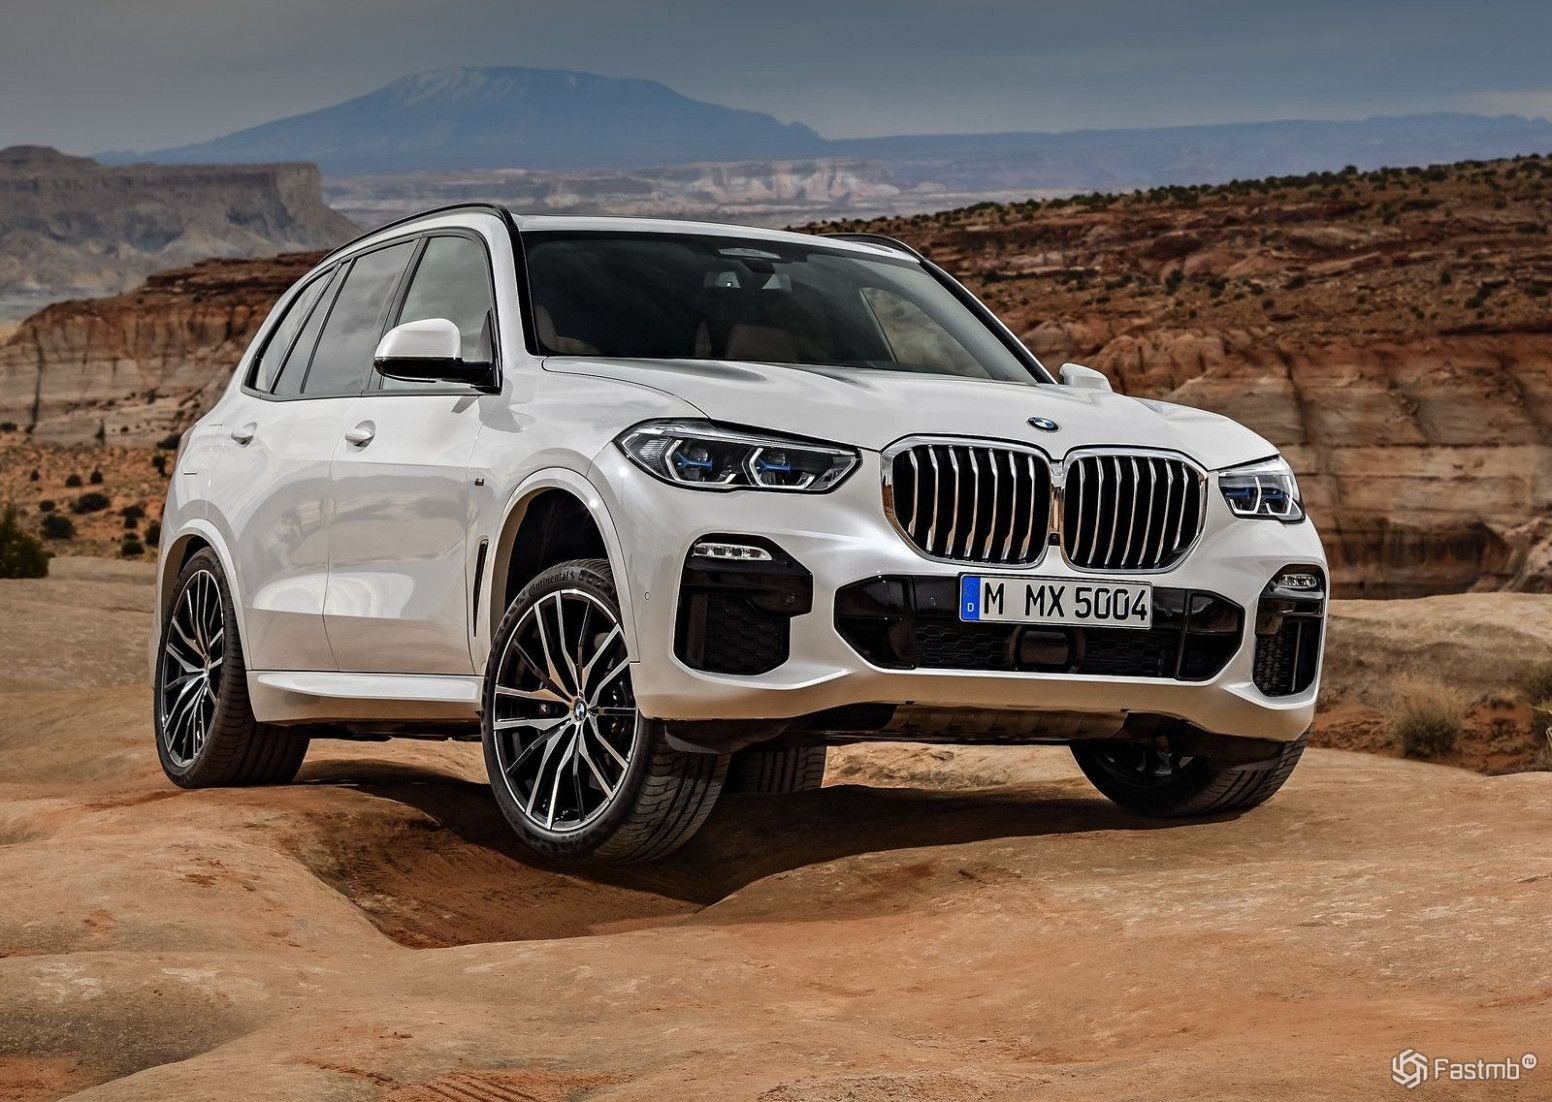 Bmw X5 2020 Price And Review In 2020 Bmw New Bmw Bmw X5